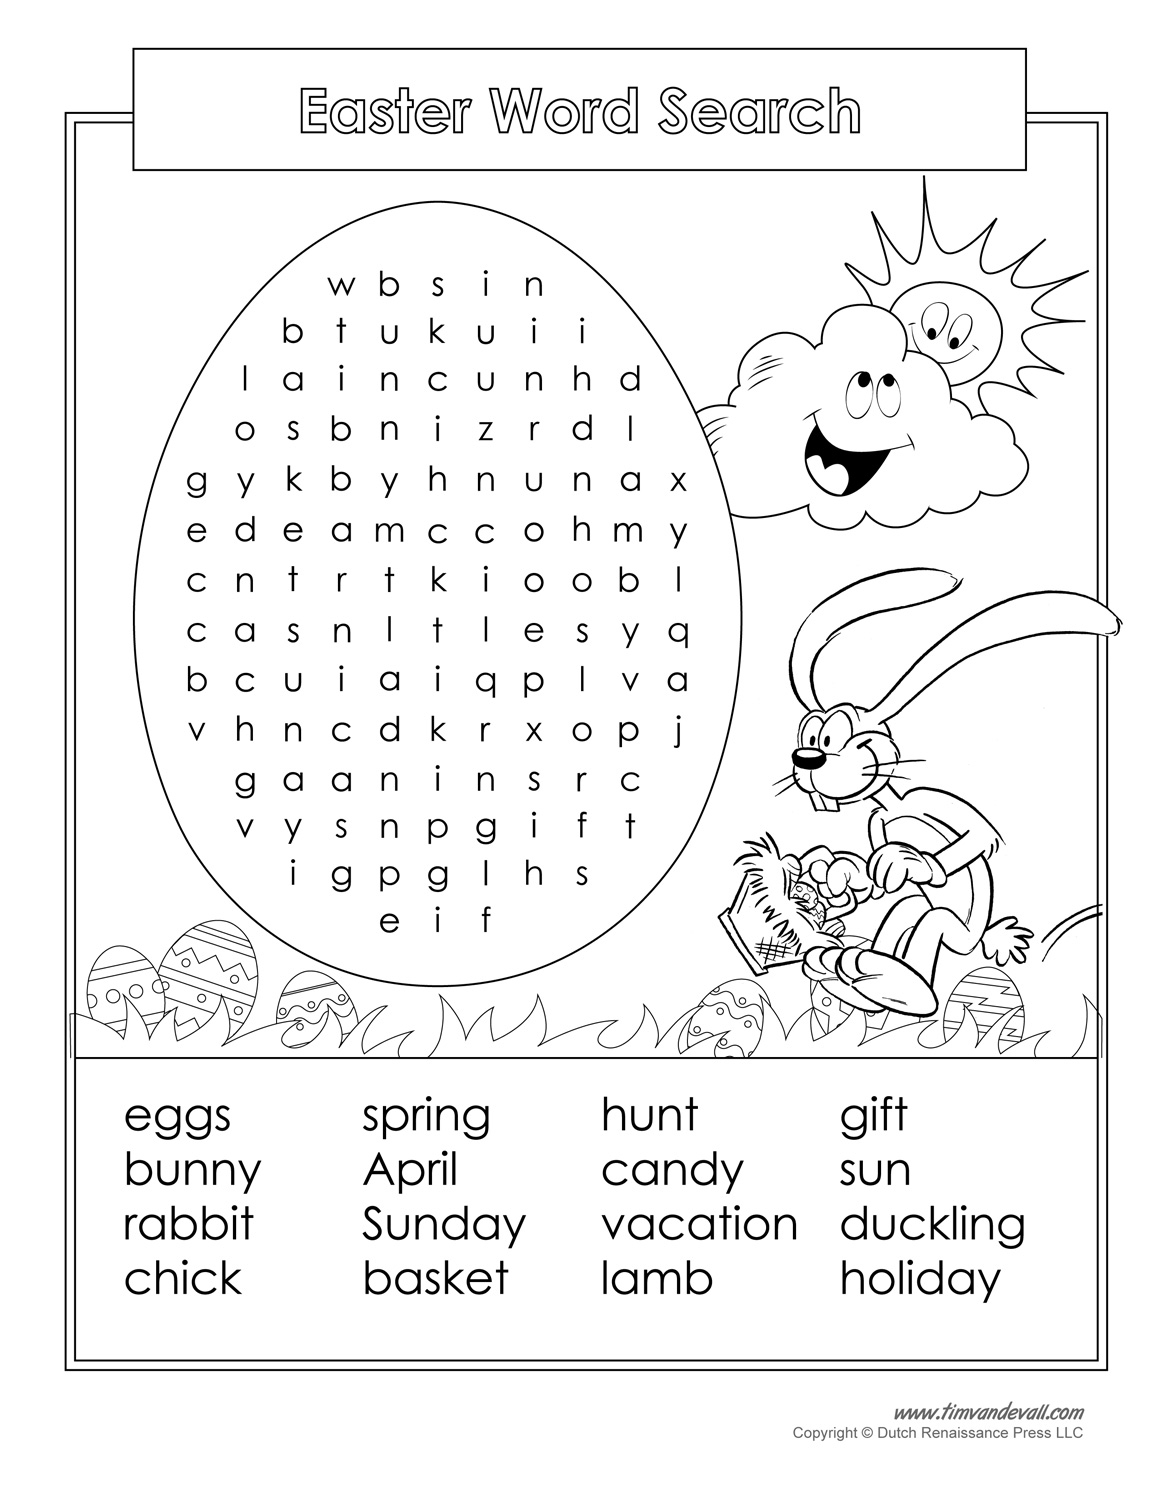 Word Search Coloring Pages To Print Printable Easter Word Search